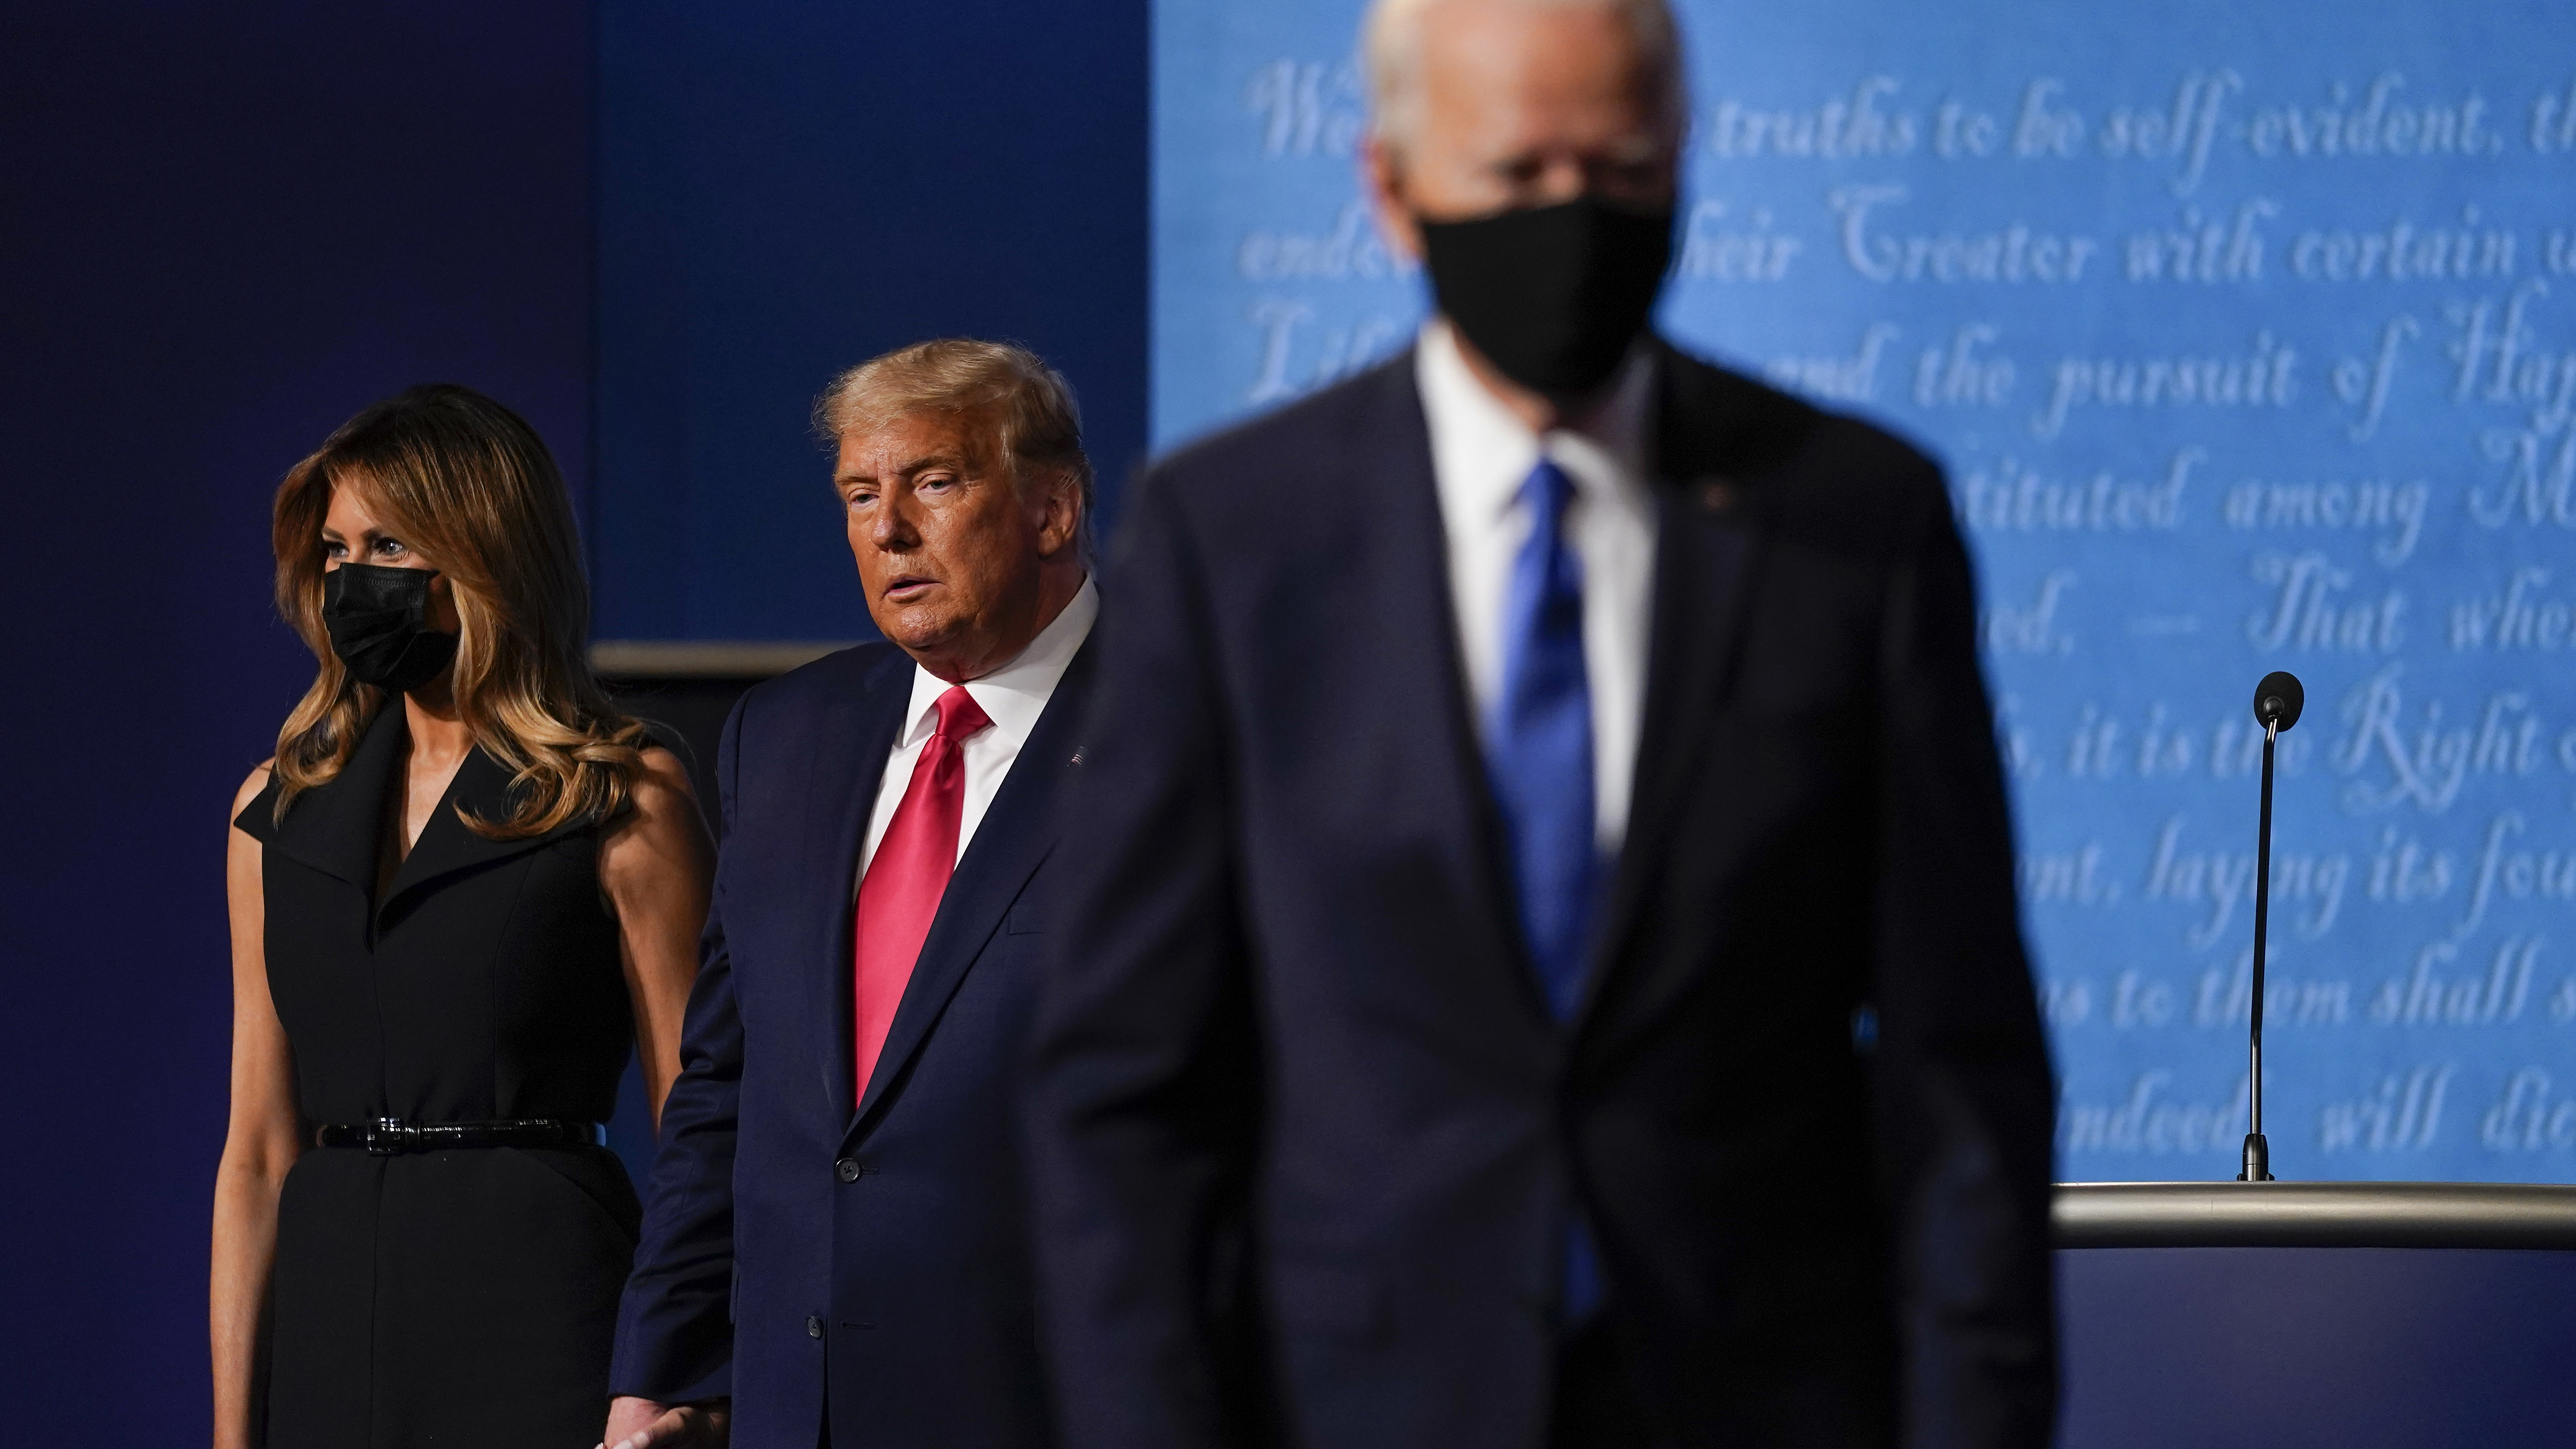 In this photo from October last year, First lady Melania Trump, left, and President Donald Trump, centre, remain on stage as Democratic presidential candidate former Vice President Joe Biden, right, walks away at the conclusion of the second and final presidential debate at Belmont University in Nashville.